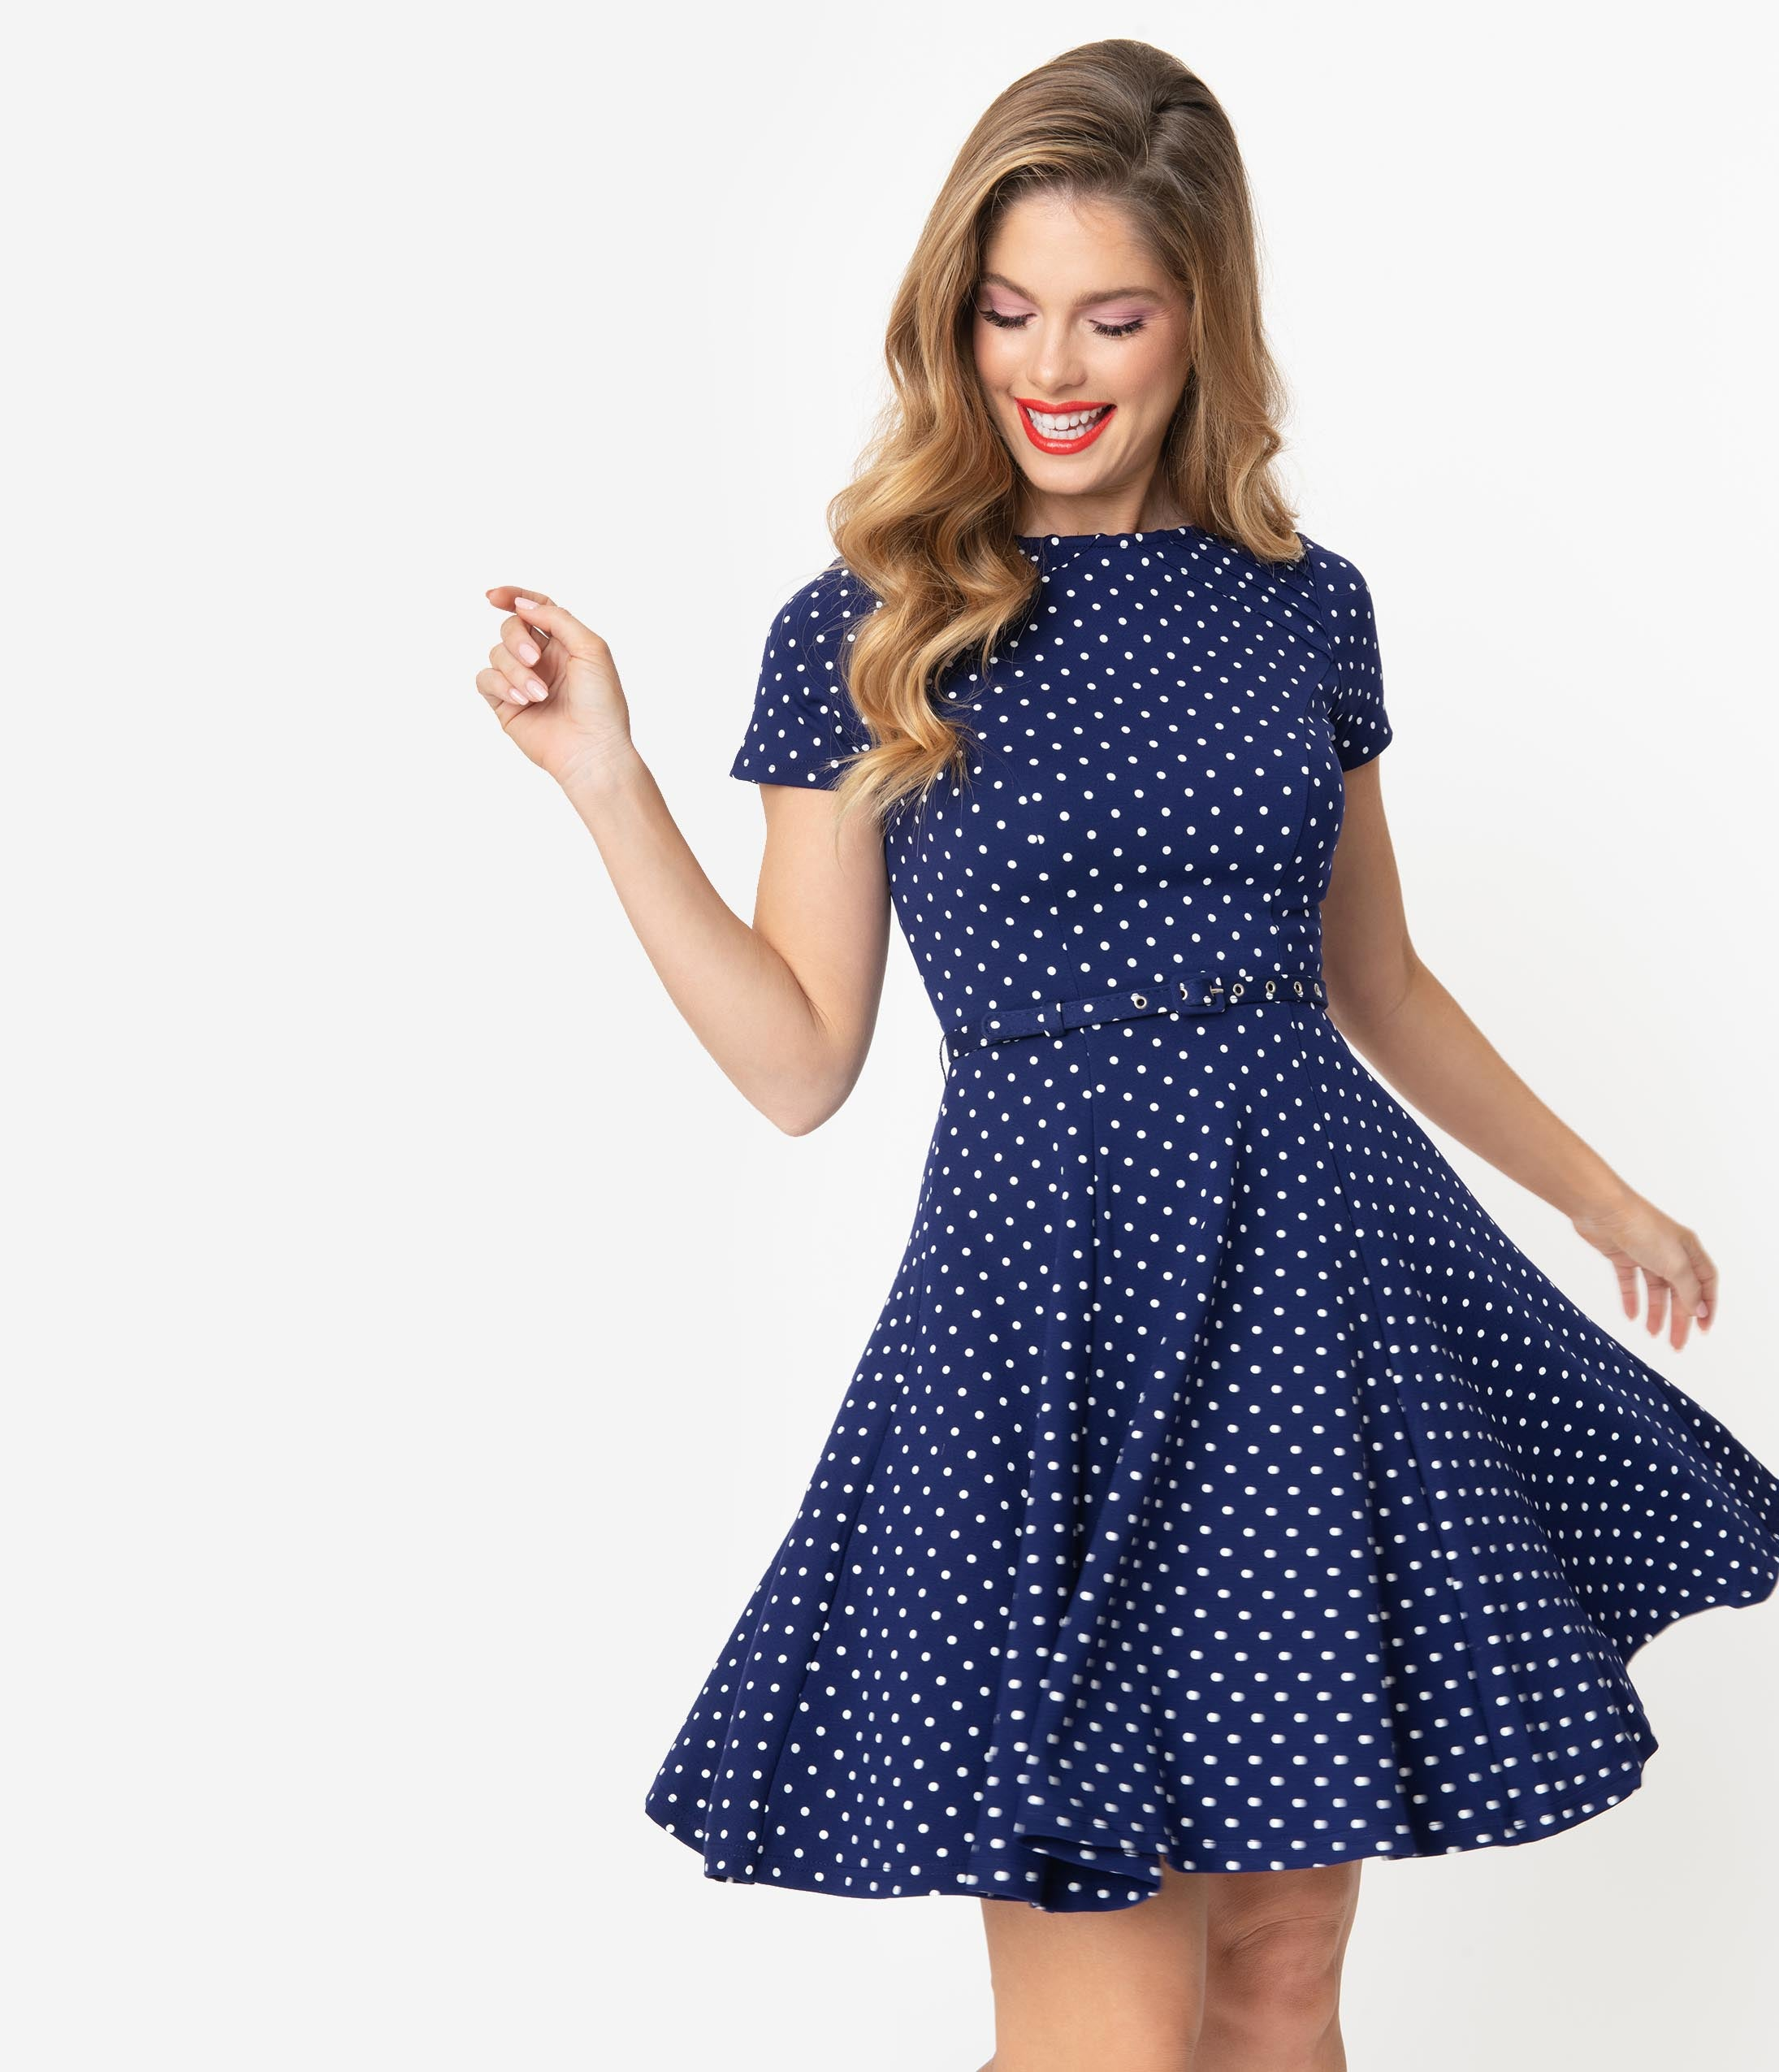 Sailor Dresses, Nautical Theme Dress, WW2 Dresses Unique Vintage Navy  White Pin Dot Short Sleeve Stephanie Fit  Flare Dress $88.00 AT vintagedancer.com